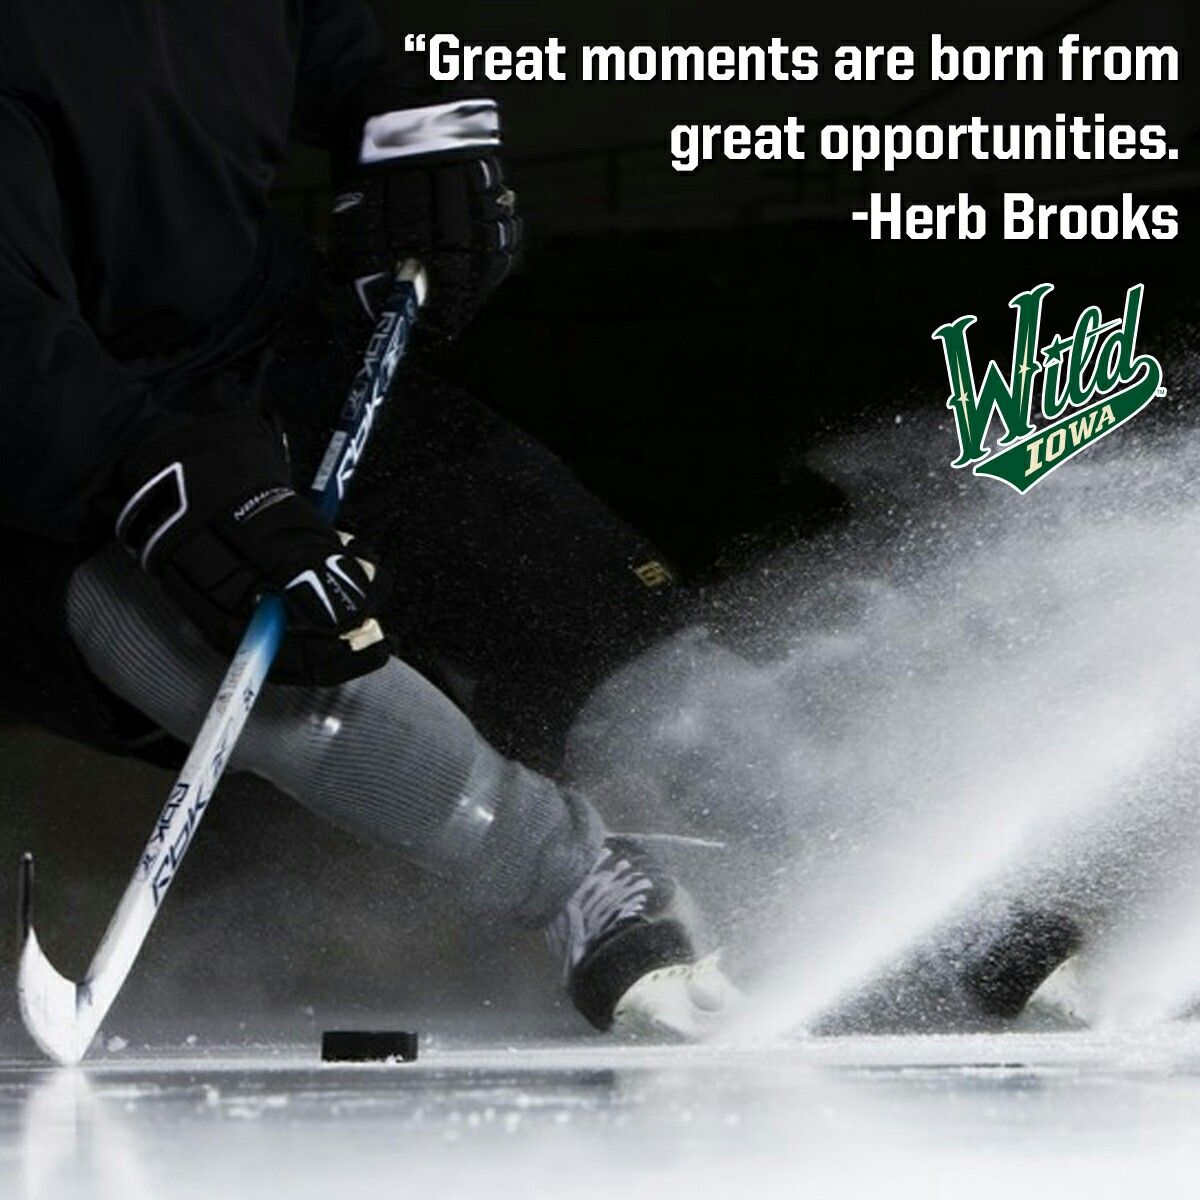 herb brooks charismatic motivation in coaching A list of over 100 of the best inspirational & motivational films of all time that   ali's own charisma and white hot rage will fire up any audience into following his   this movie is about the life of coach herb brooks played by kurt russell and  his.